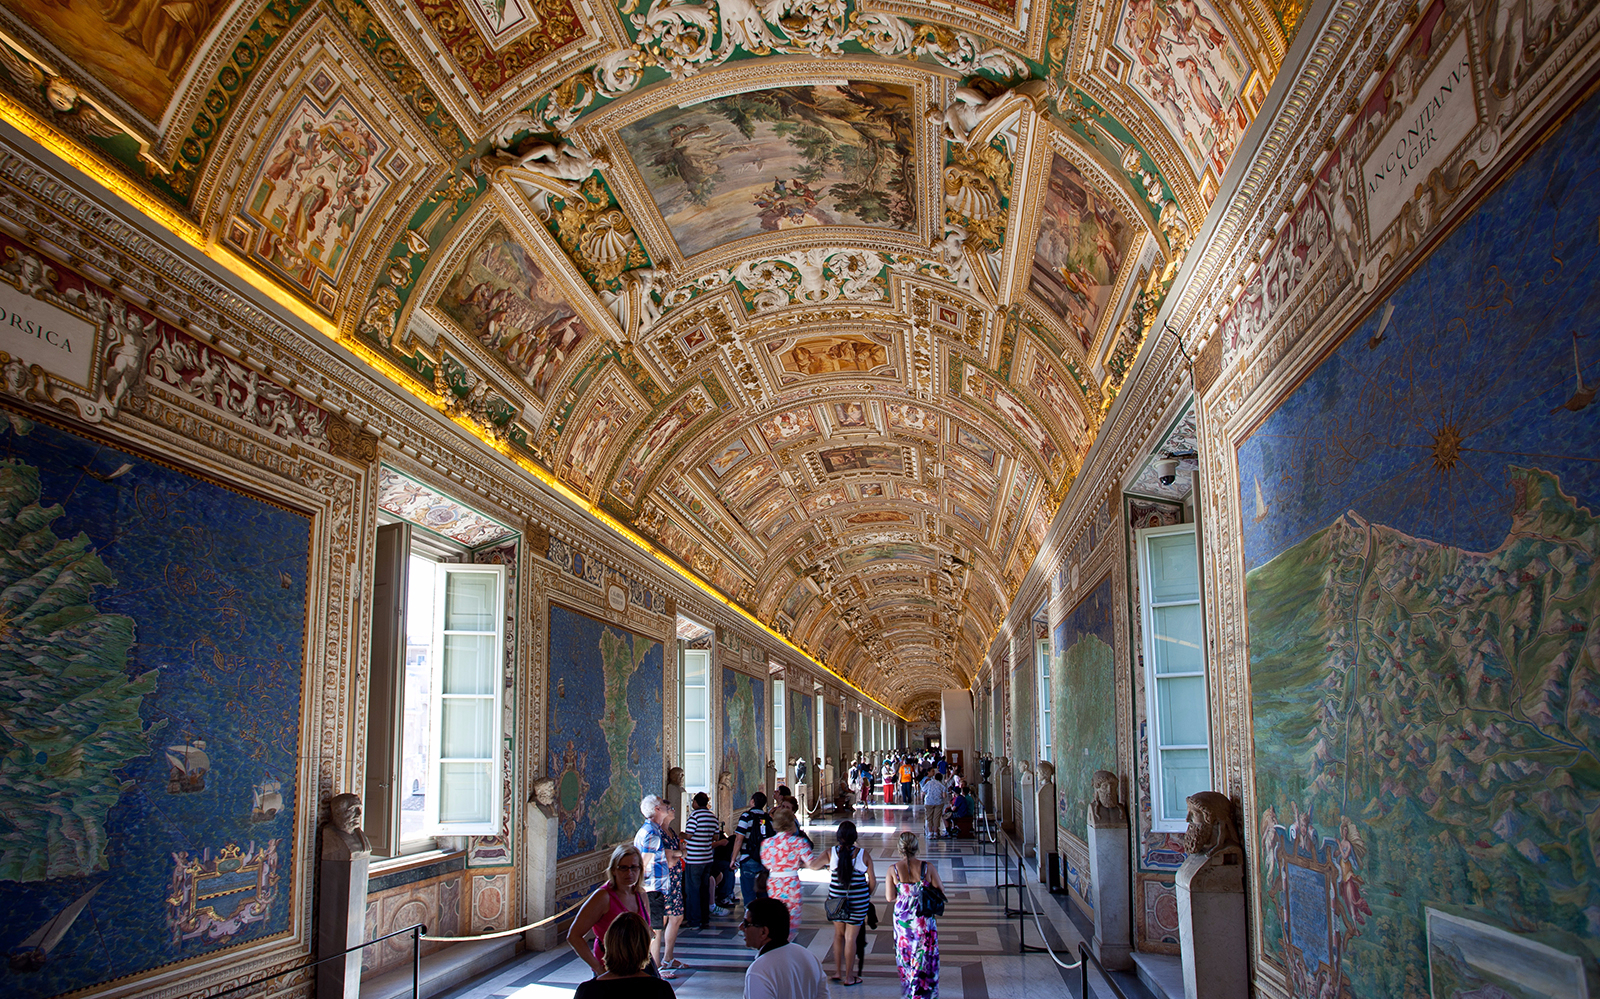 2903045e ac4d 4157 ad52 60dda4eedd3d 7969 rome early access to vatican museum and sistine chapel 01